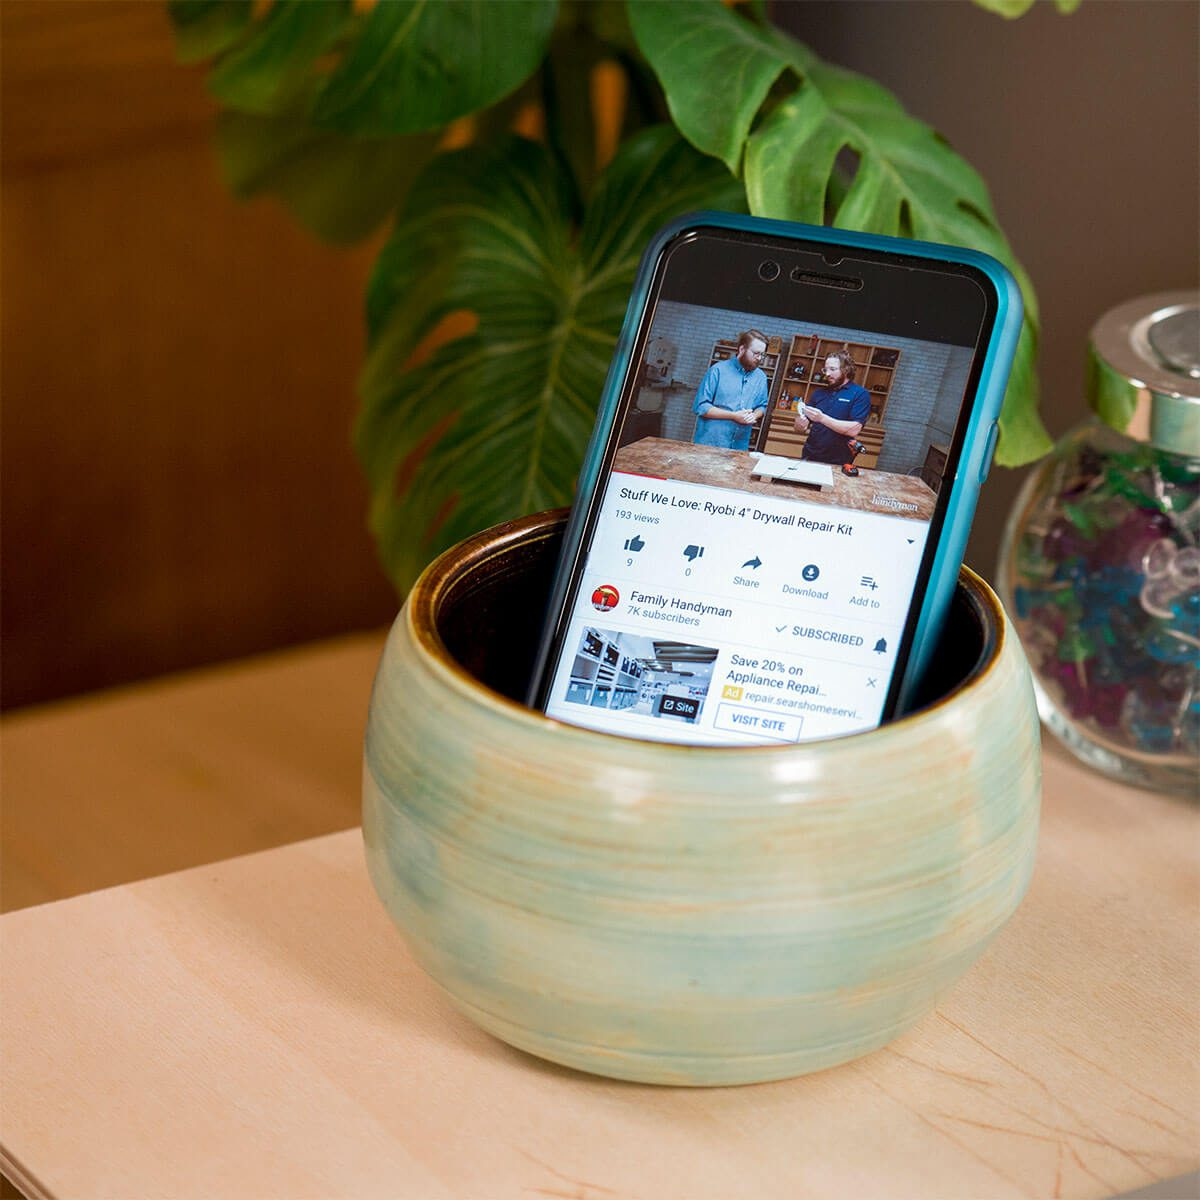 smartphone speaker using a bowl